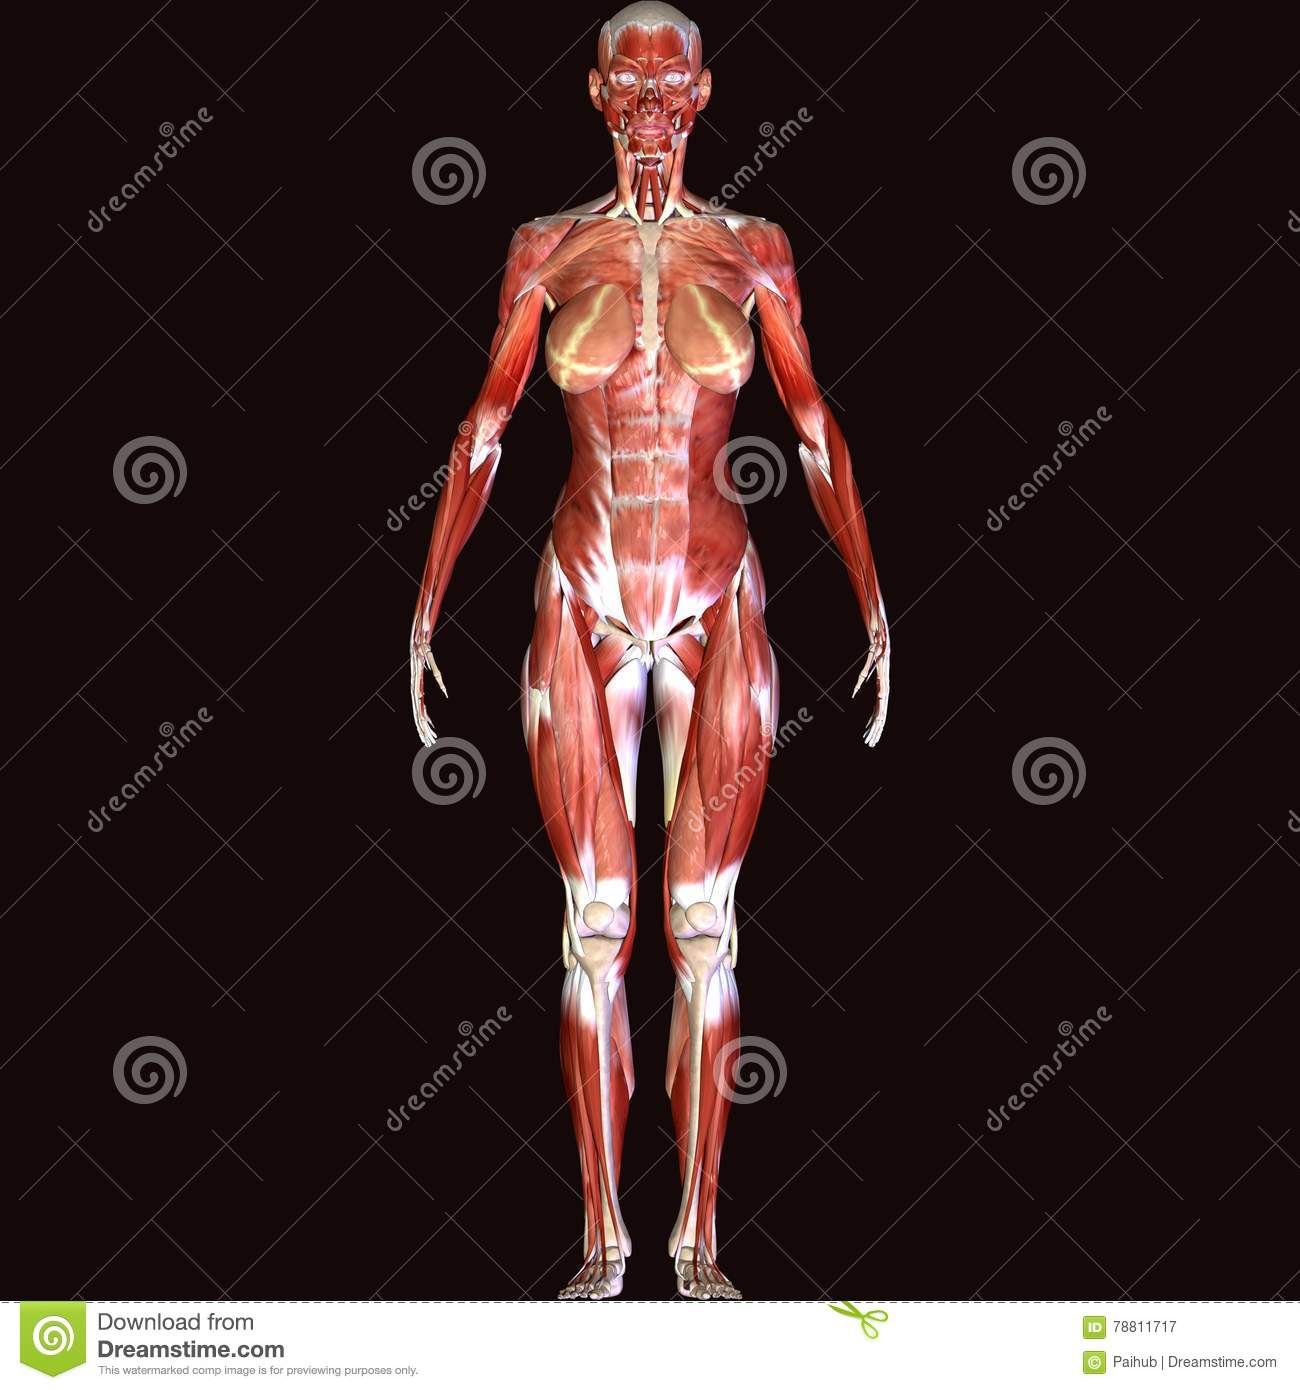 3d Render Depicting The Muscle Structure Of The Human Body Male